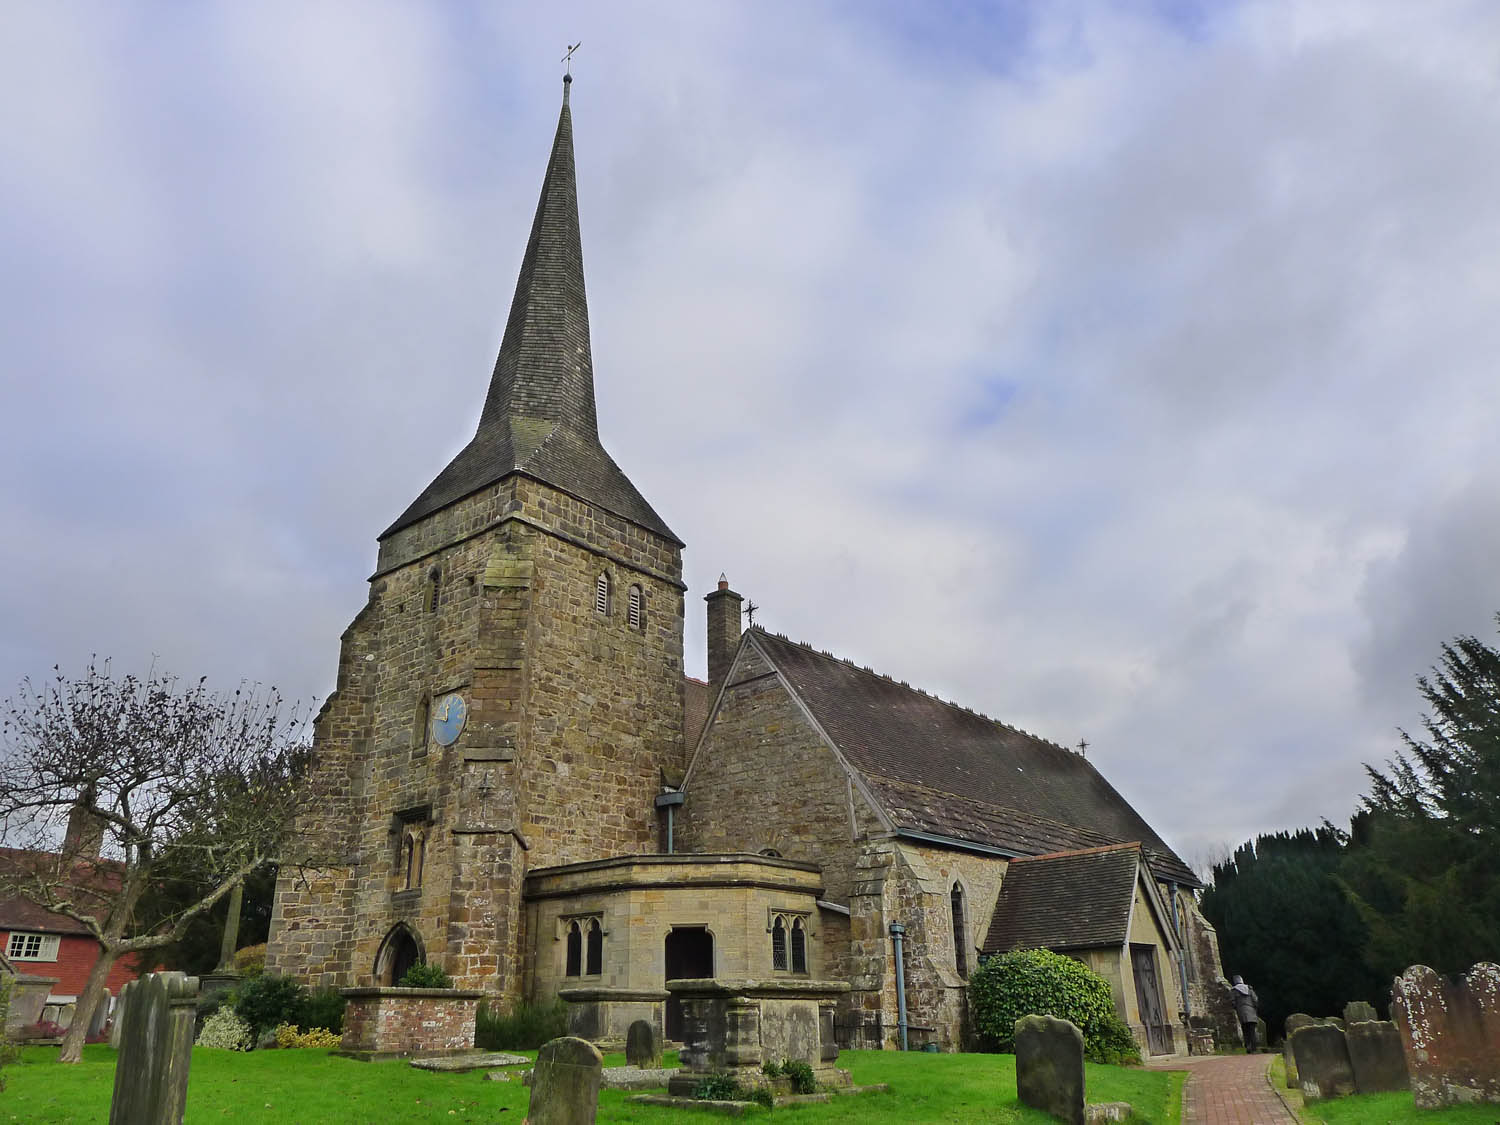 St Margaret's Church, West Hoathly